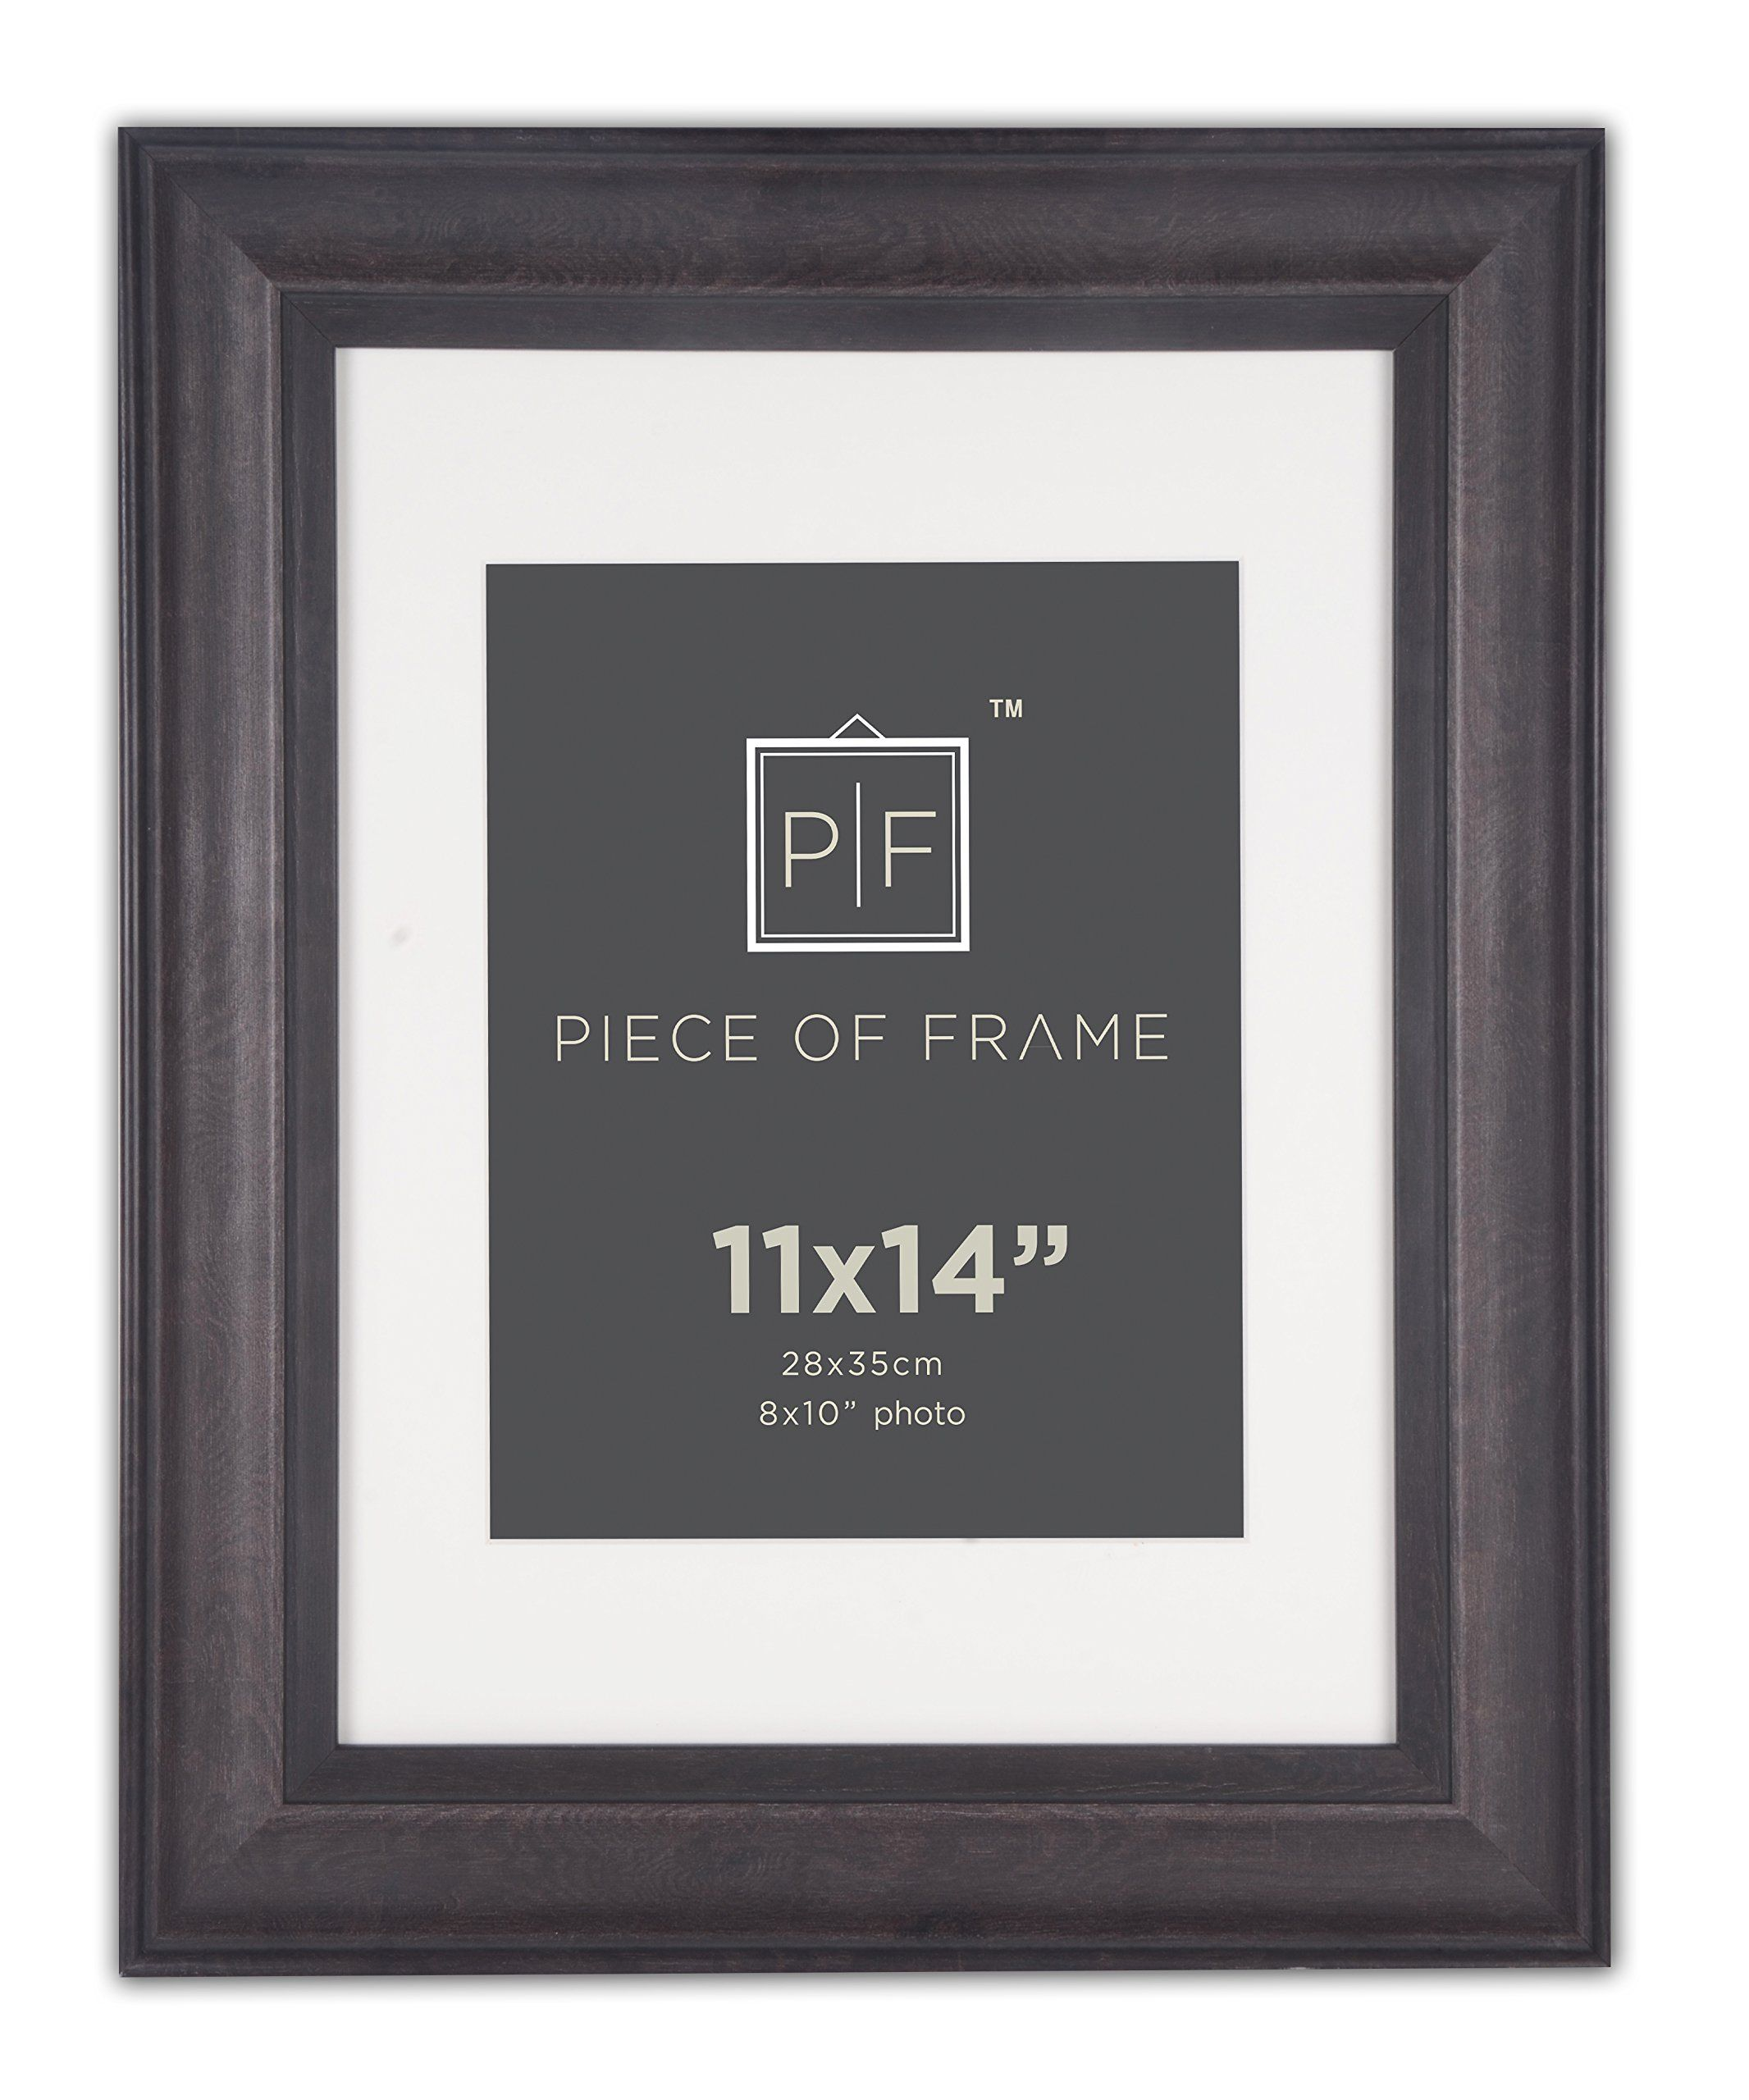 Golden State Art 11x14 Photo Frame 2inch Dark Wood Grain Finish Photo Frame With Black Border With Ivory Mat Picture Frame Designs Frame Picture Frame Gallery